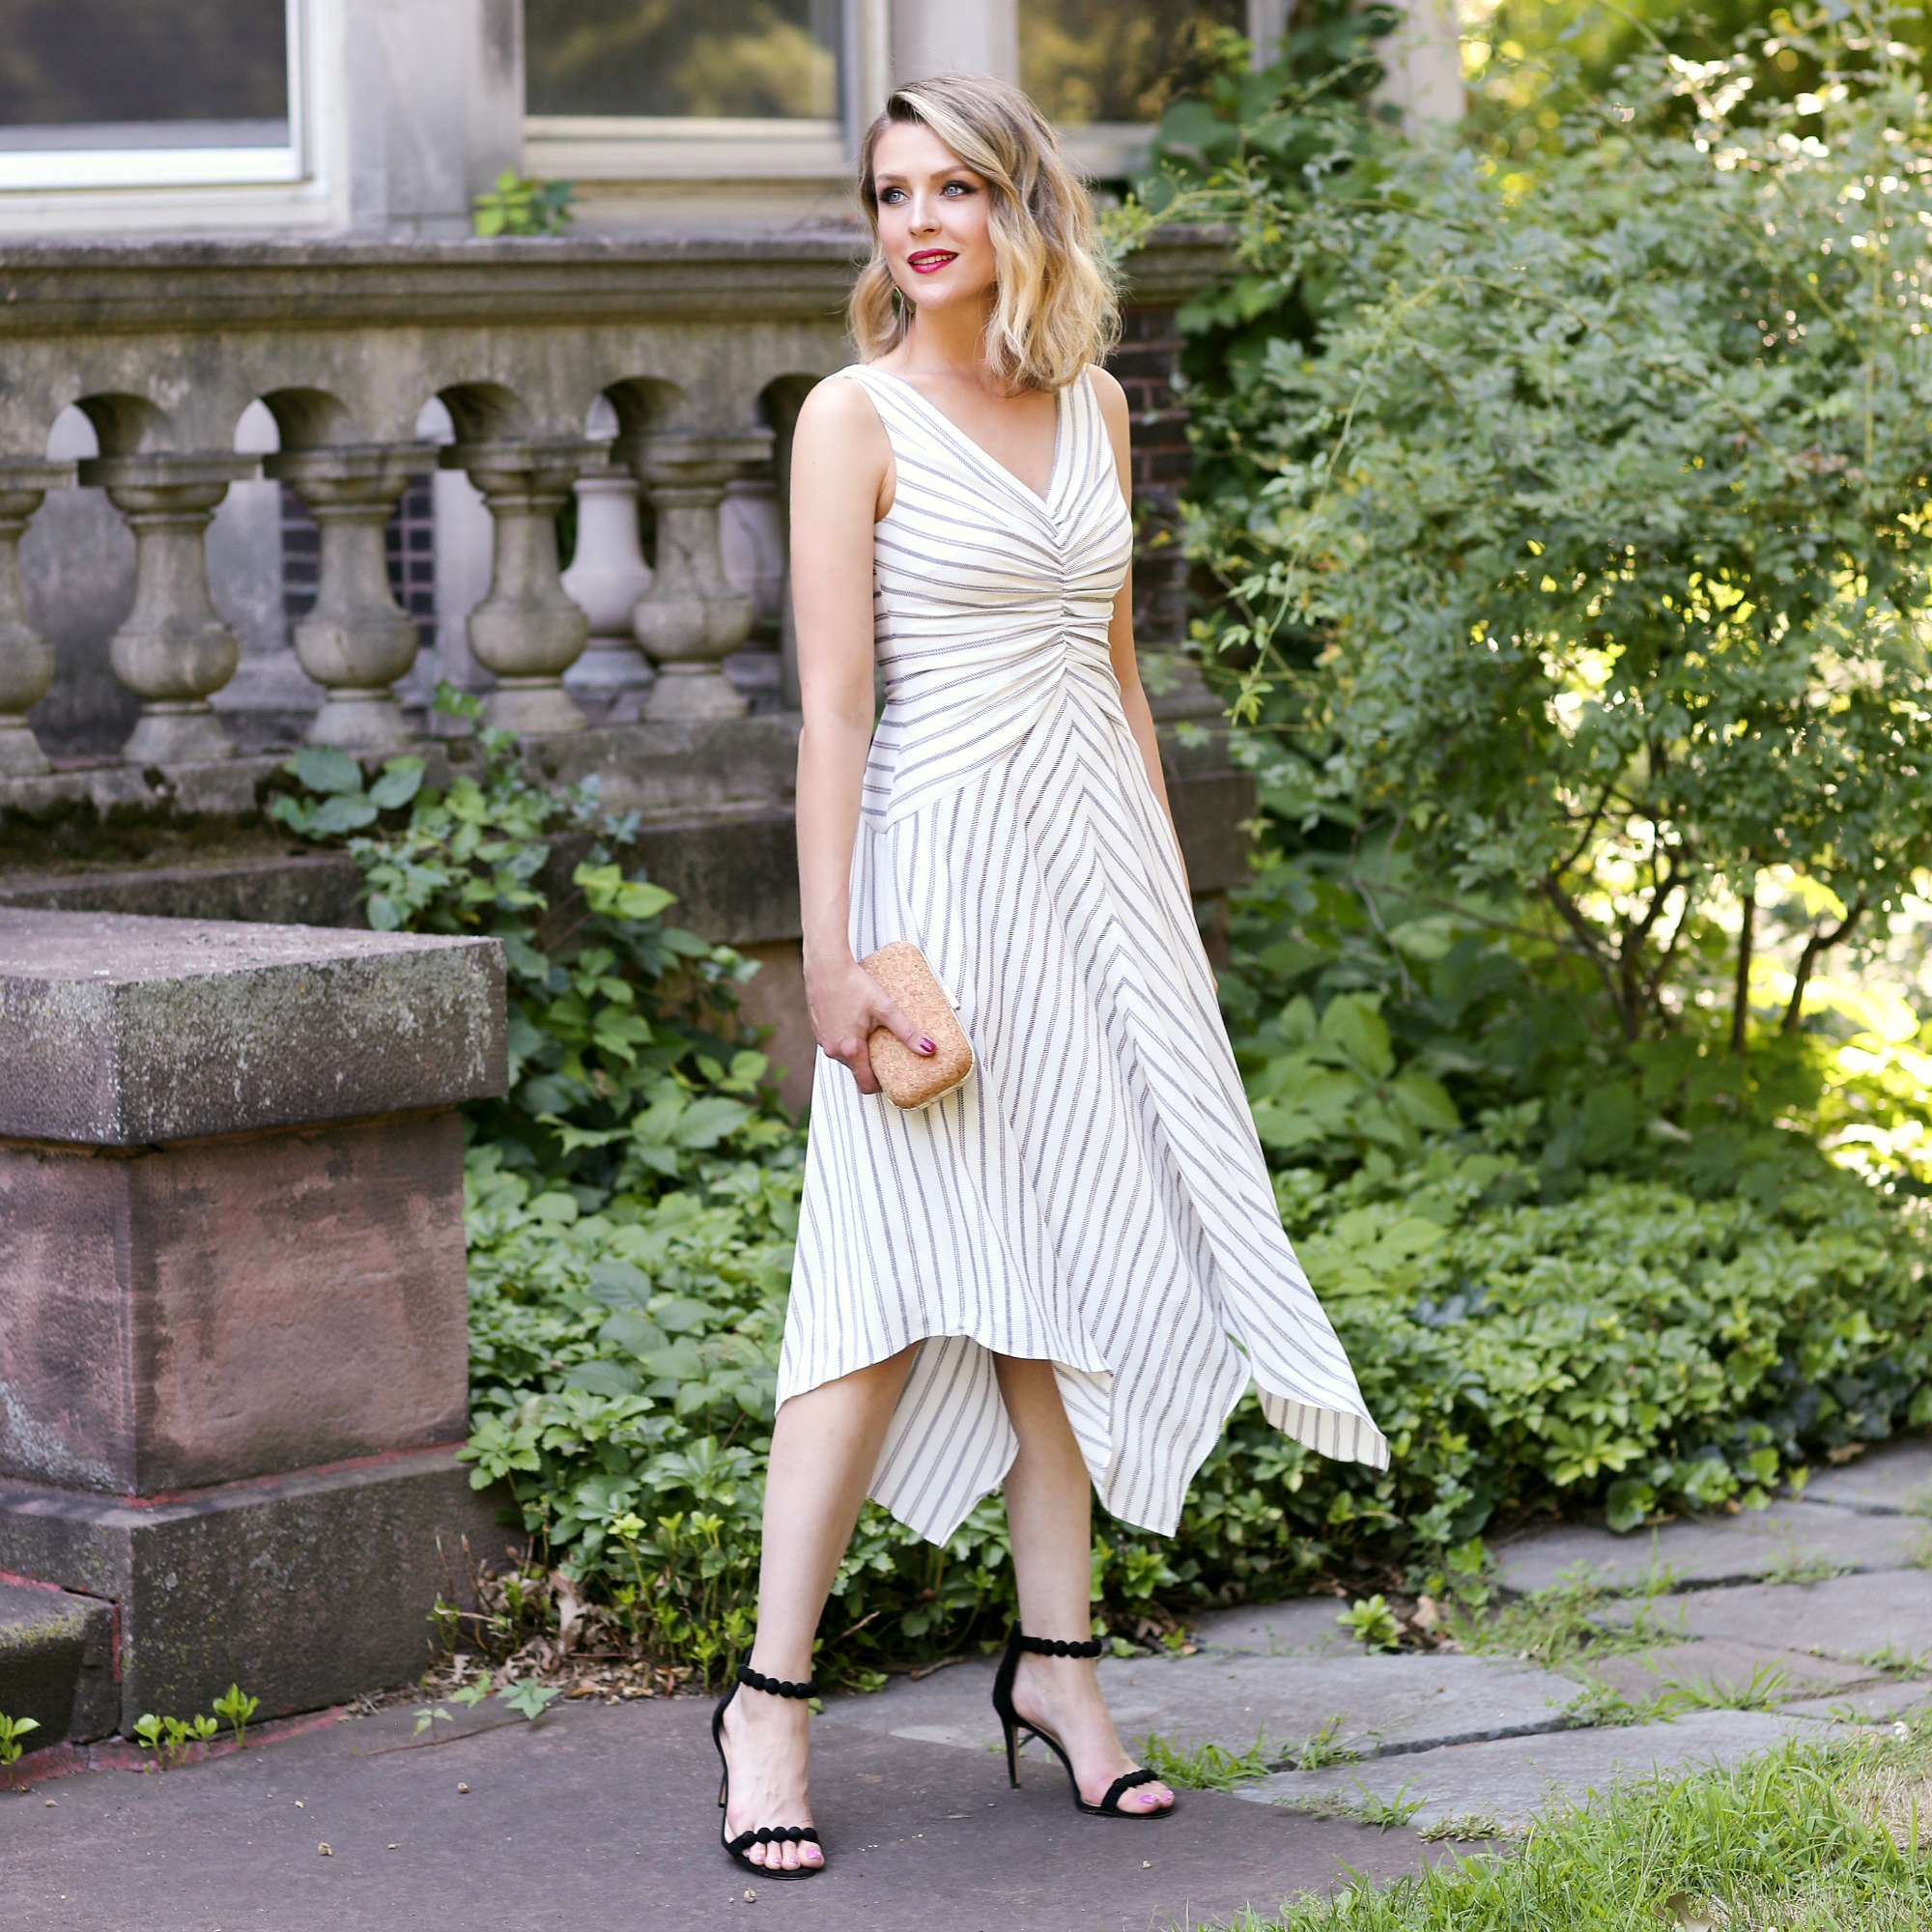 The Alyson Fit & Flare - Possibly the most comfortable style on sale, and definitely the next dress you need in your closet! Wear on the weekend with easy flats, or dress all the way up with red lips, a cute clutch, and your favorite heels (can you tell we're seriously inspired by Kimberly's take on our Alyson Fit & Flare?). Treat yourself to a flattering set of stripes and twirl away with some savings!